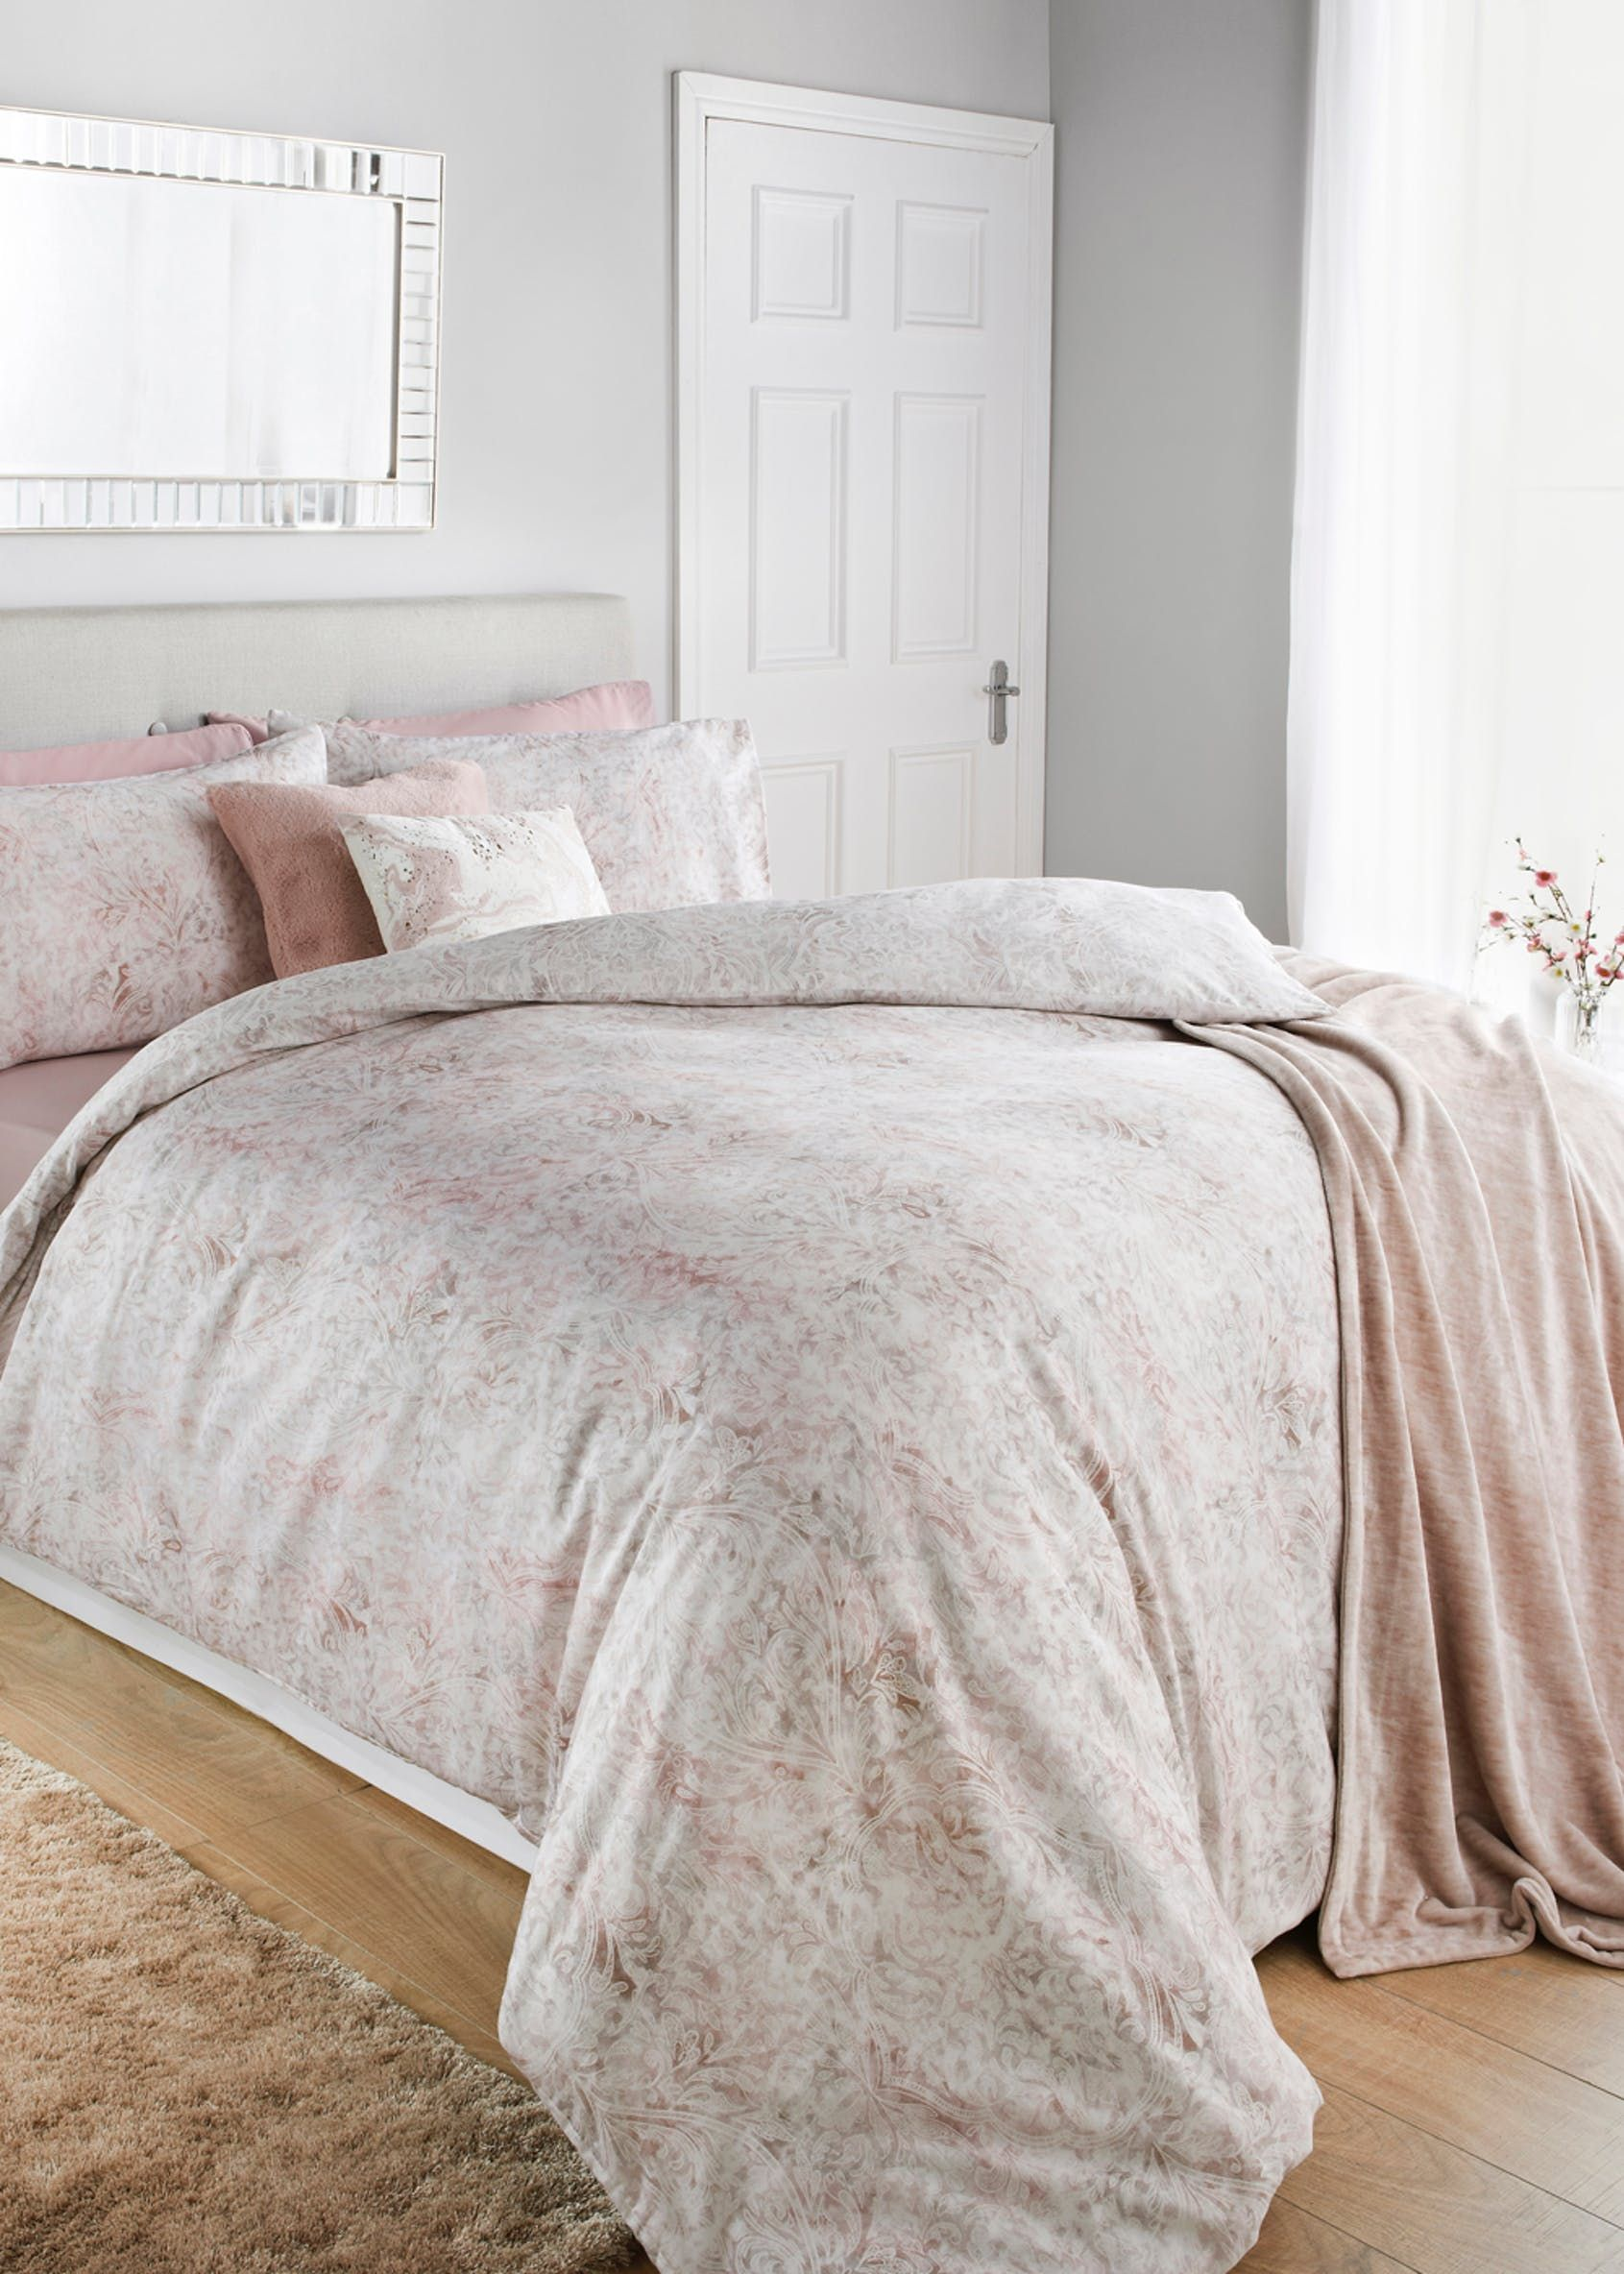 100 Cotton Paisley Duvet Cover Pink Bed linens luxury